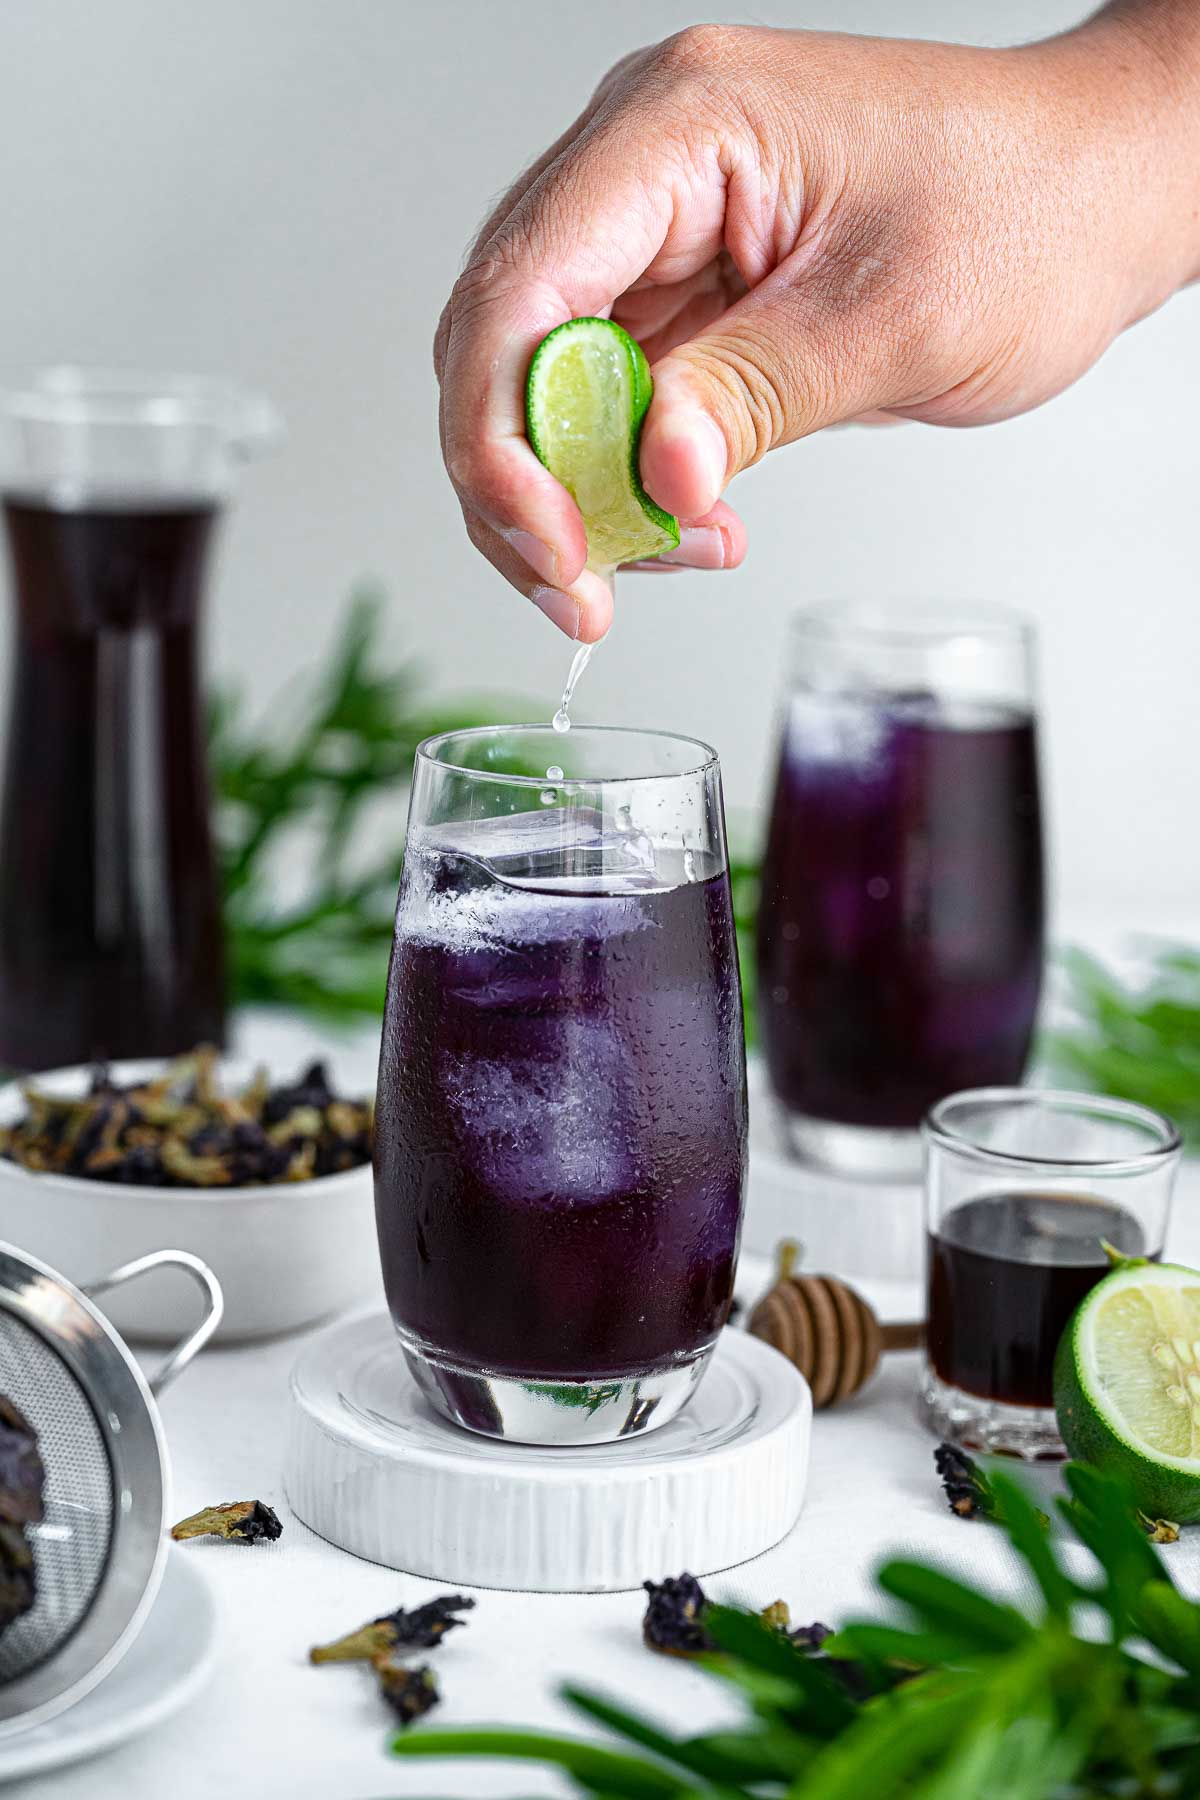 lime being squeezed into a glass of iced butterfly pea tea